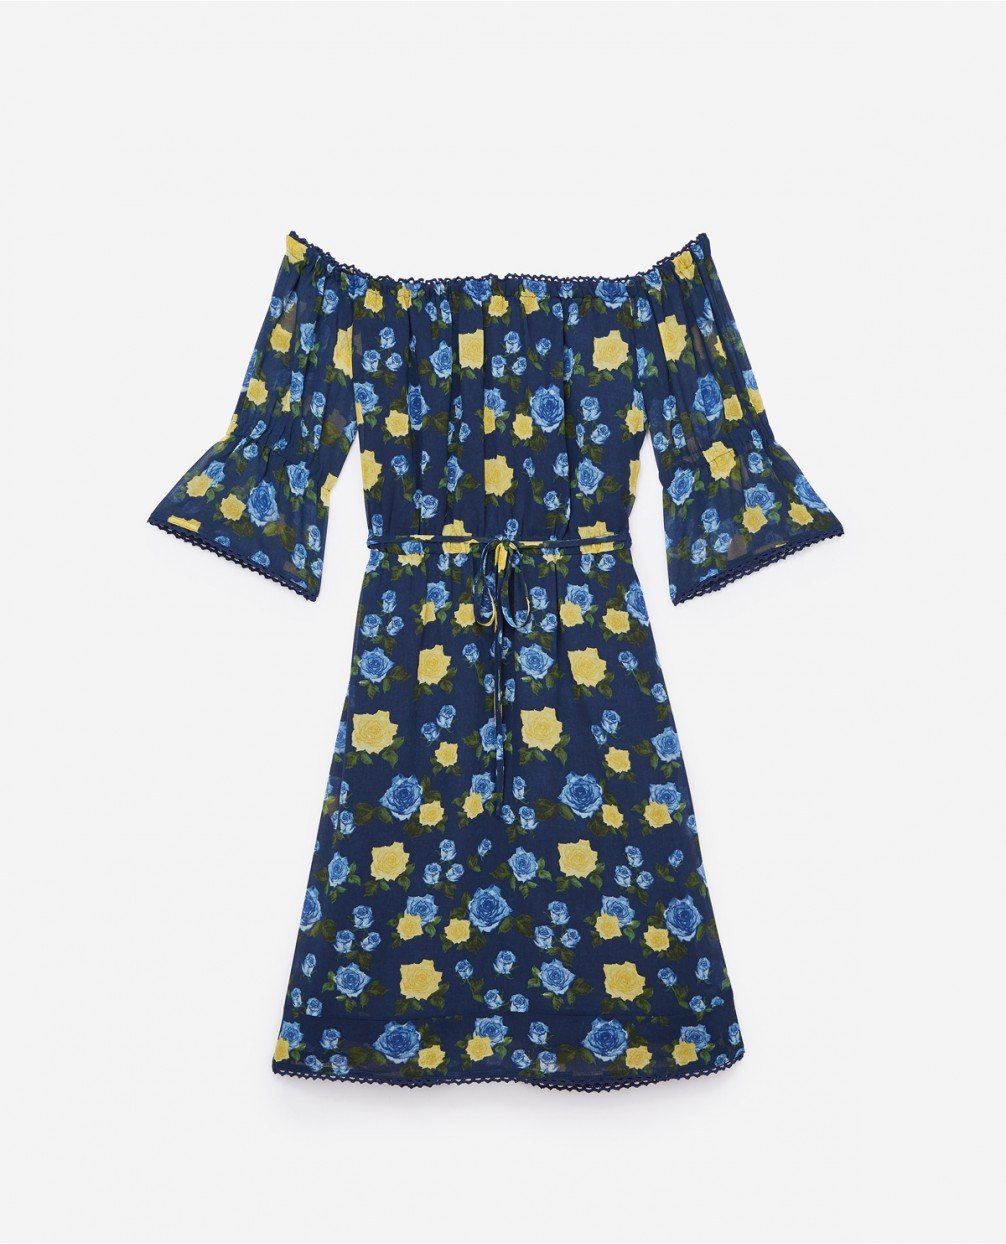 The Kooples United States Official Website - Wild Roses blue dress